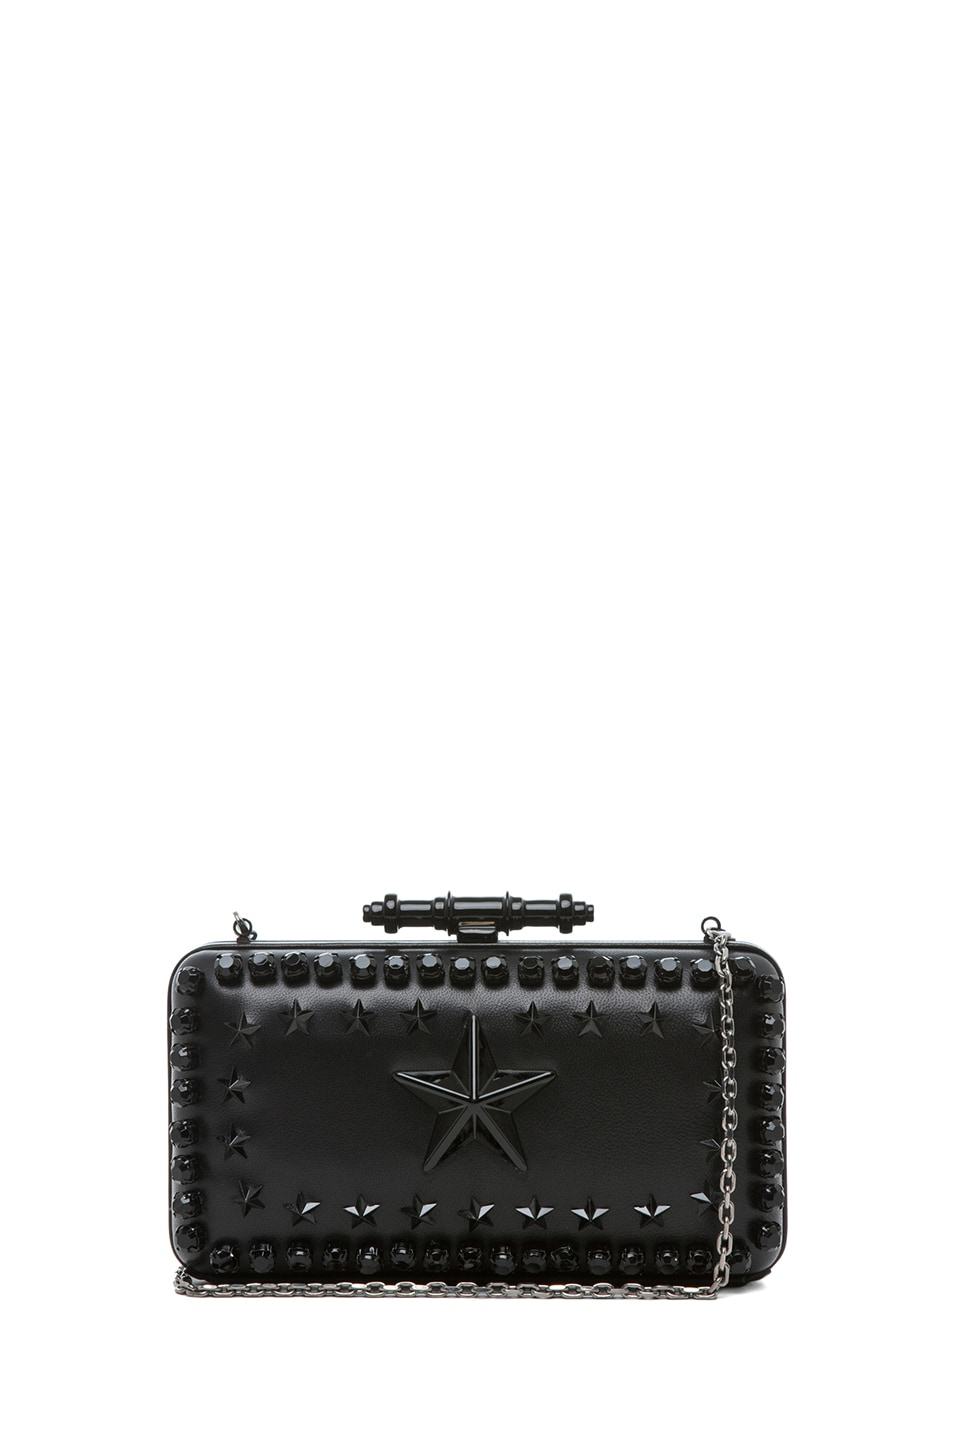 b6f35087df04 Image 1 of Givenchy Obsedia Star-Studded Minaudiere in Black